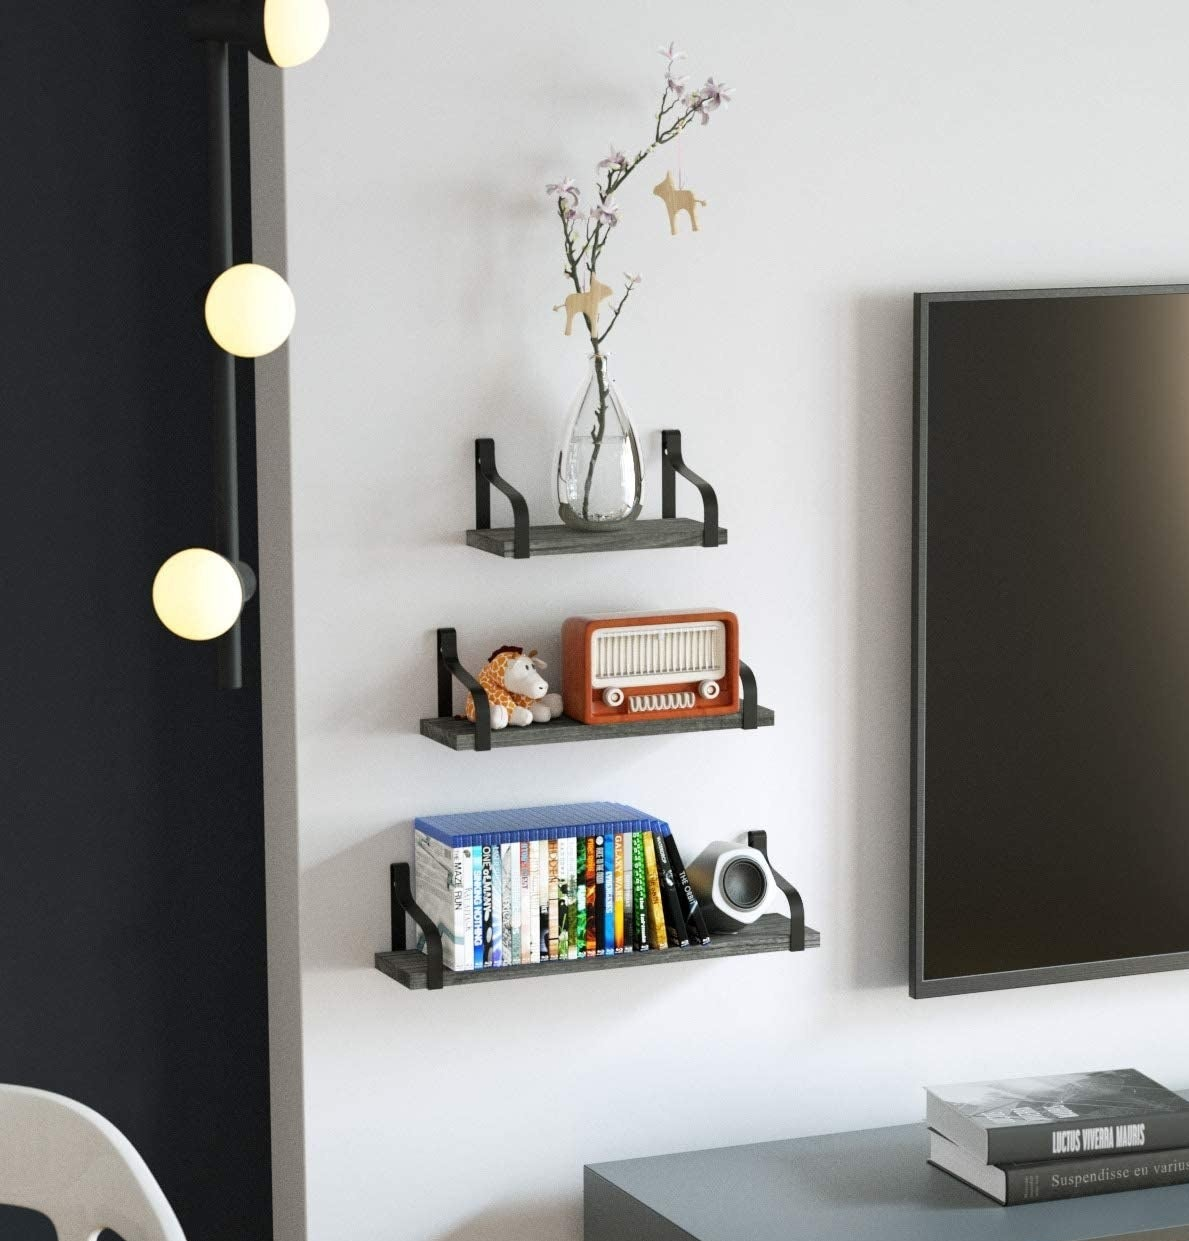 Floating shelves are installed on a wall beside a television